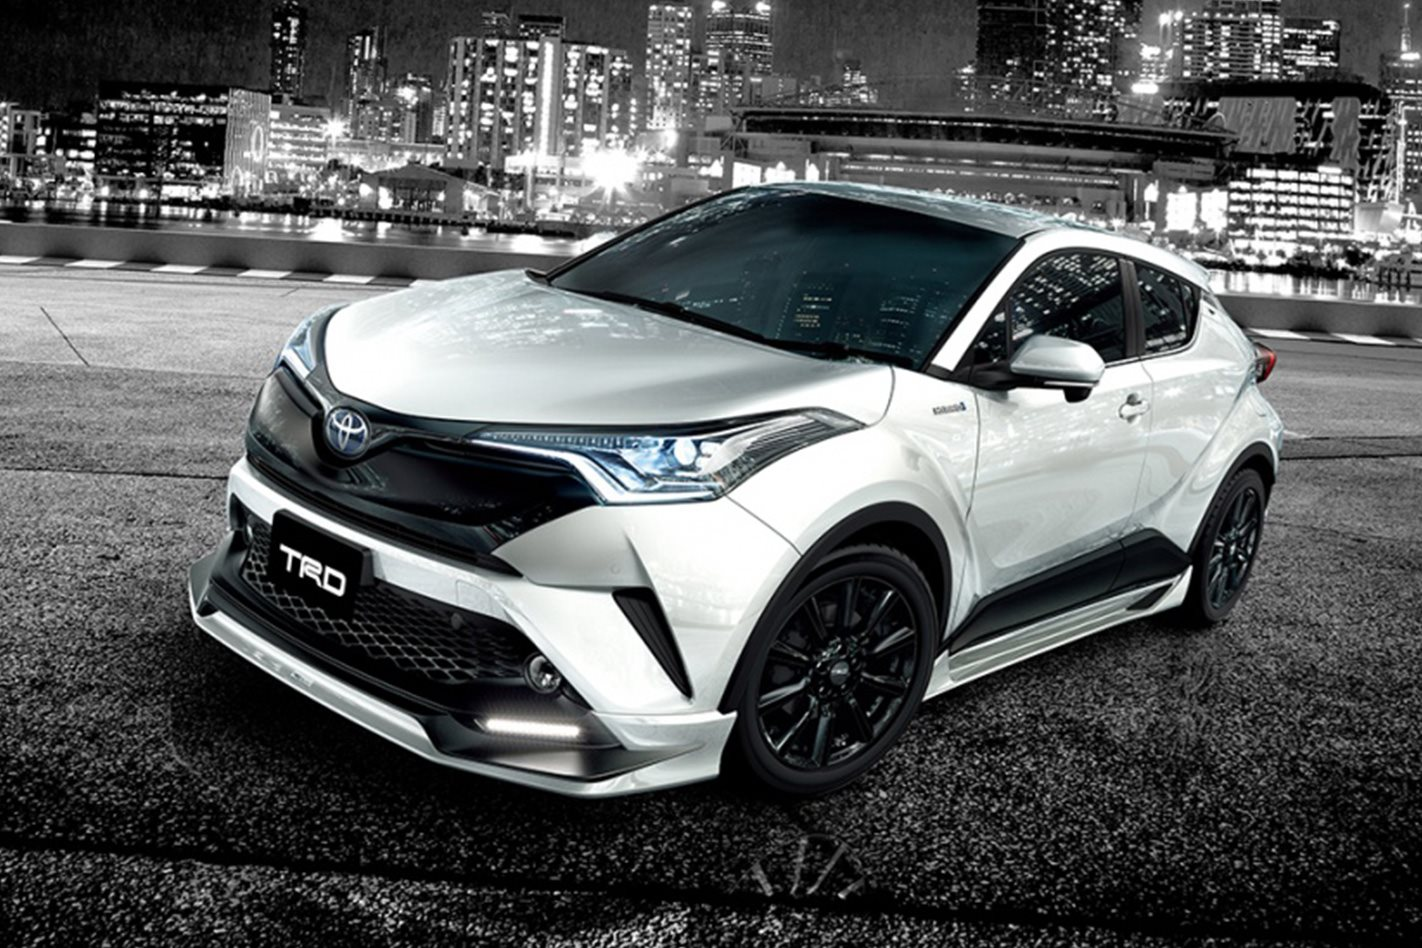 toyota c hr gets trd makeover for tokyo auto salon wheels. Black Bedroom Furniture Sets. Home Design Ideas